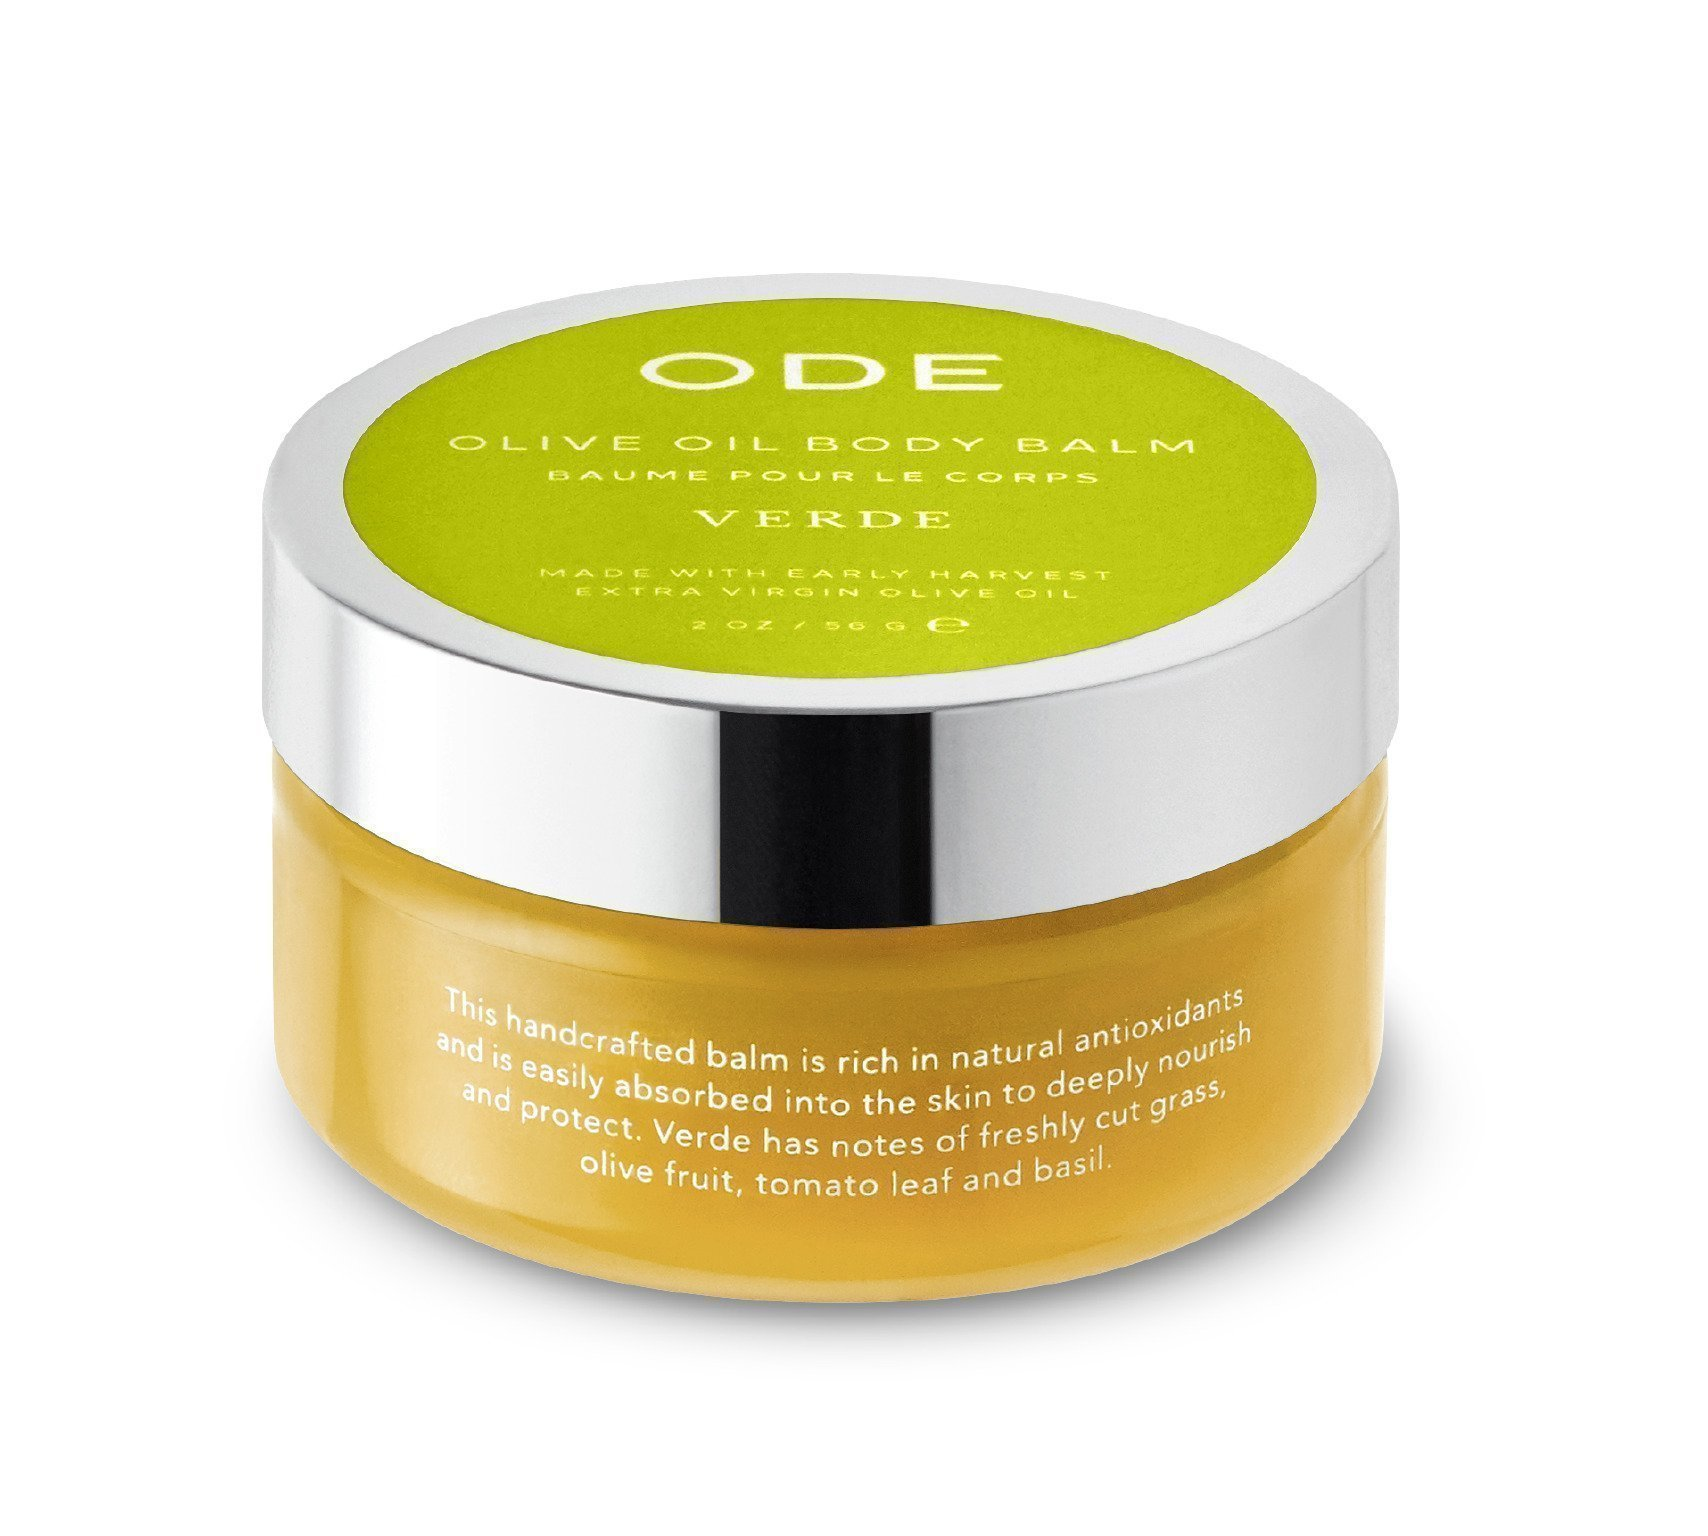 ODE natural beauty - Verde Olive Oil Body Balm